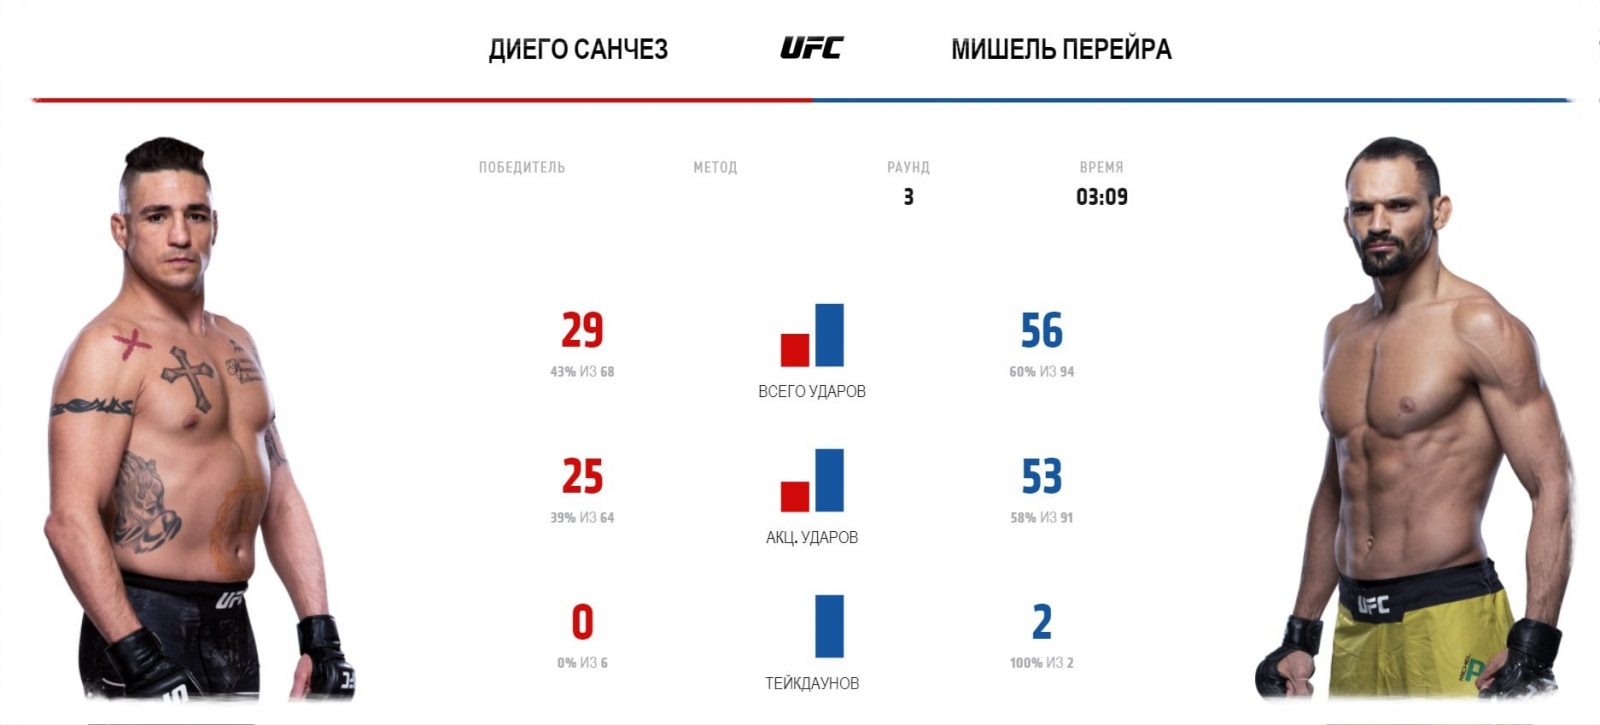 video-boya-diego-sanches-mishel-perejra-diego-sanchez-michel-pereira-ufc-fight-night-167